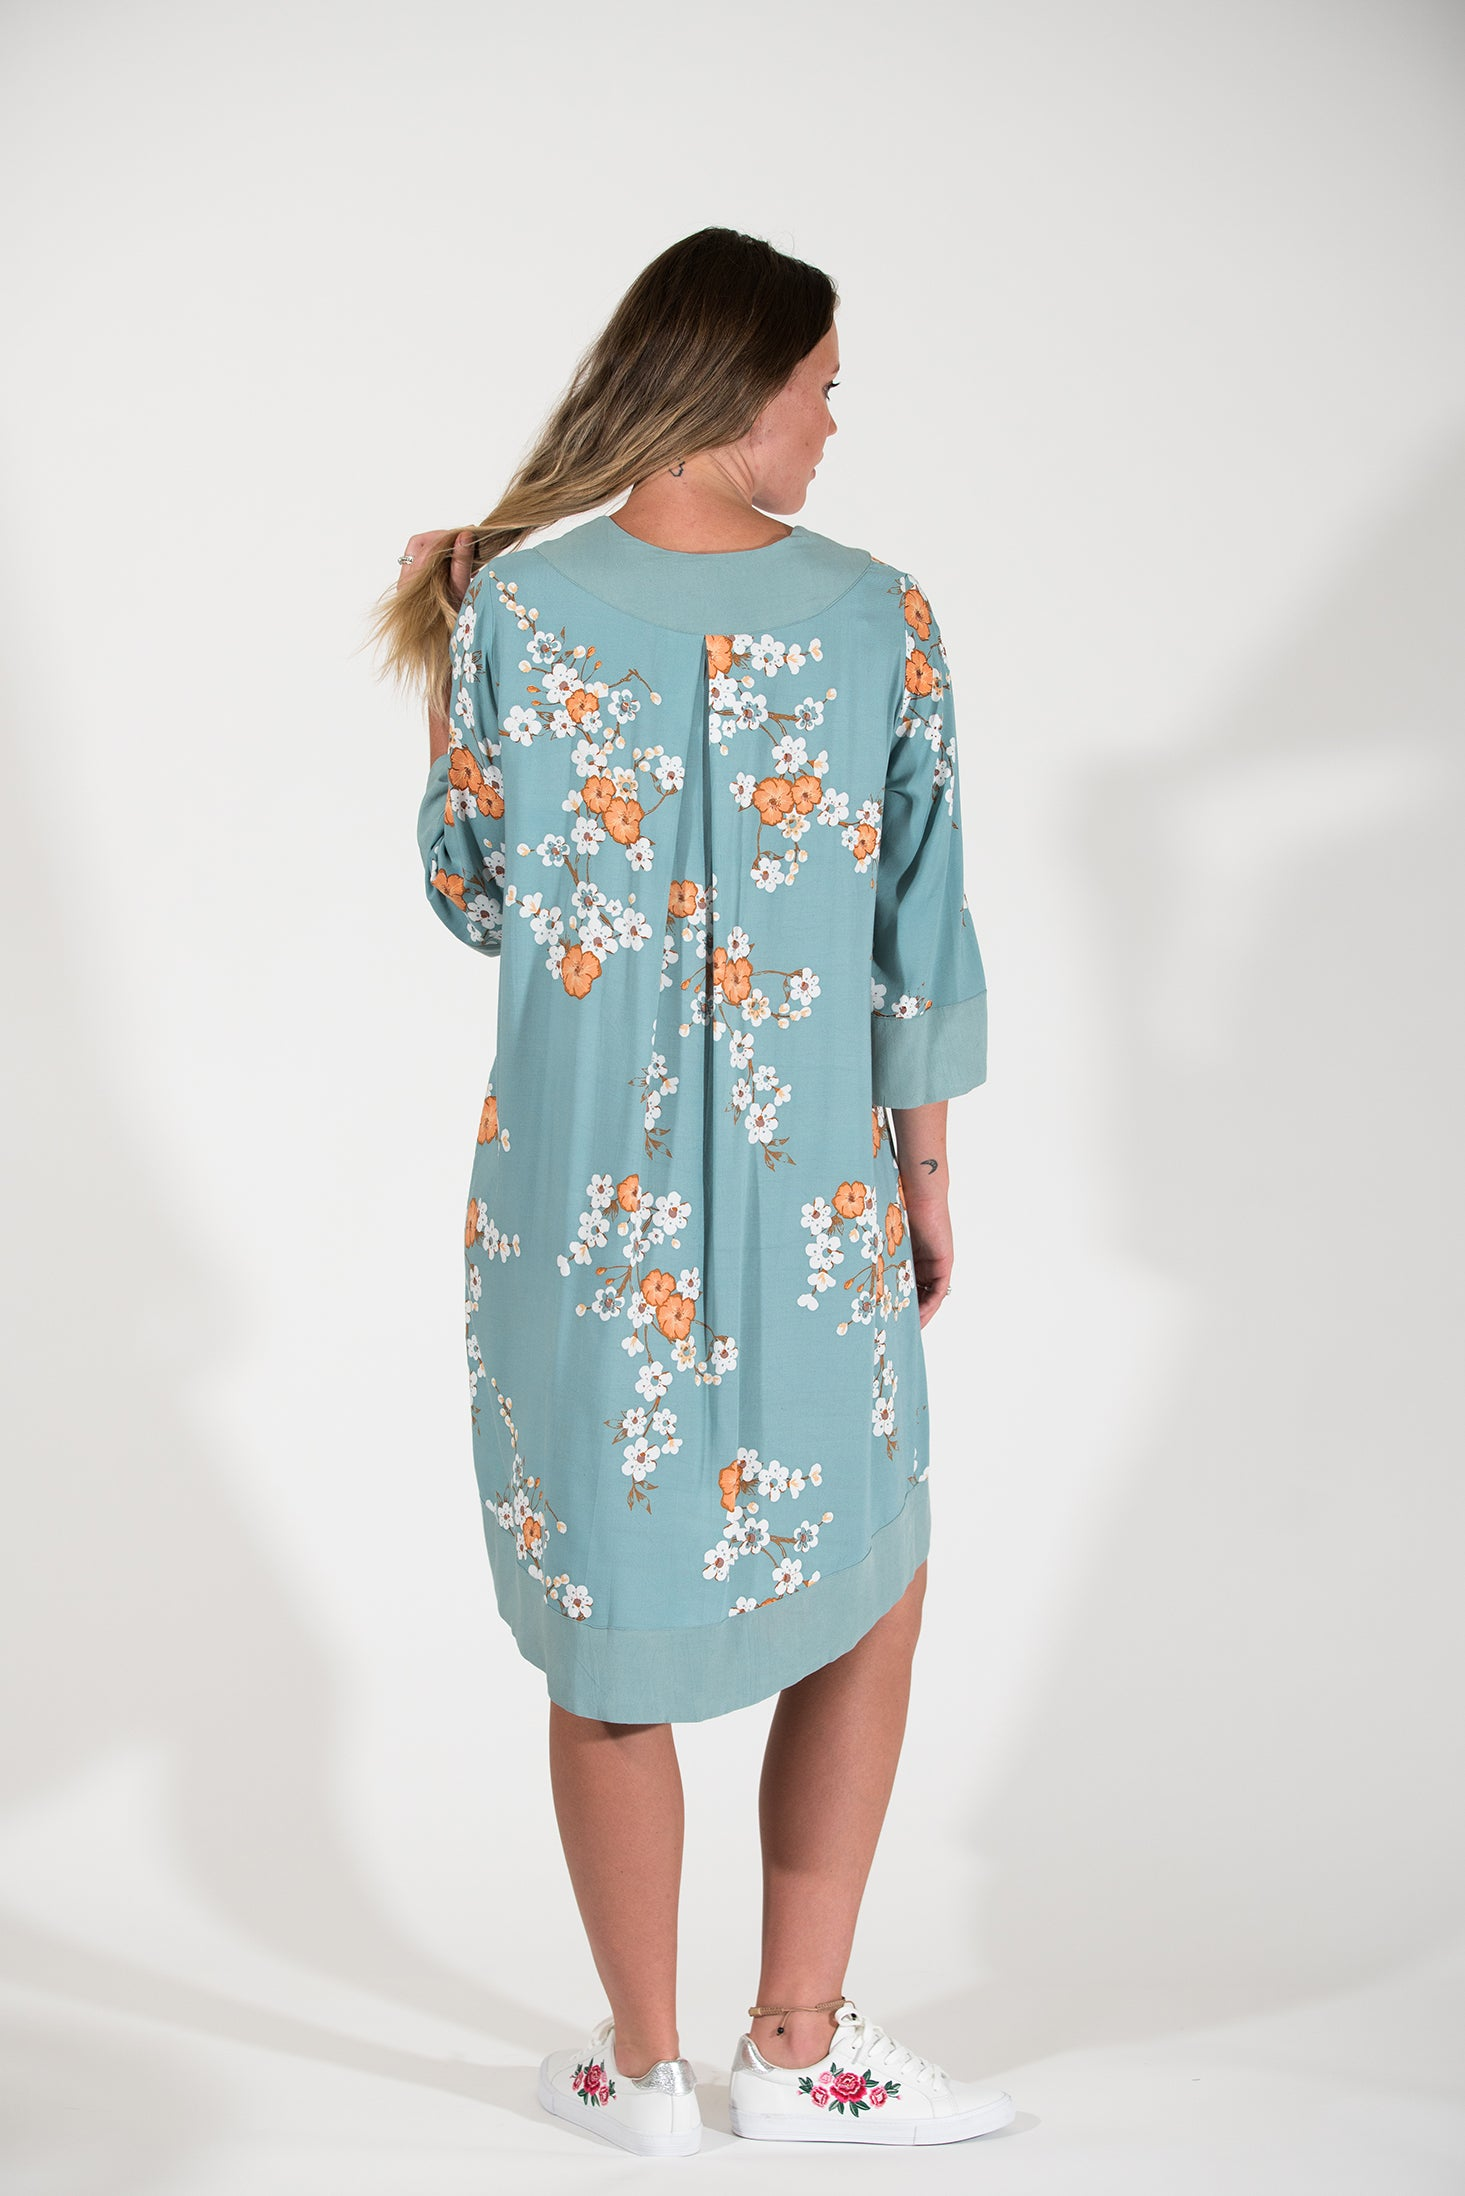 Posy Dress - Orange Cosmos